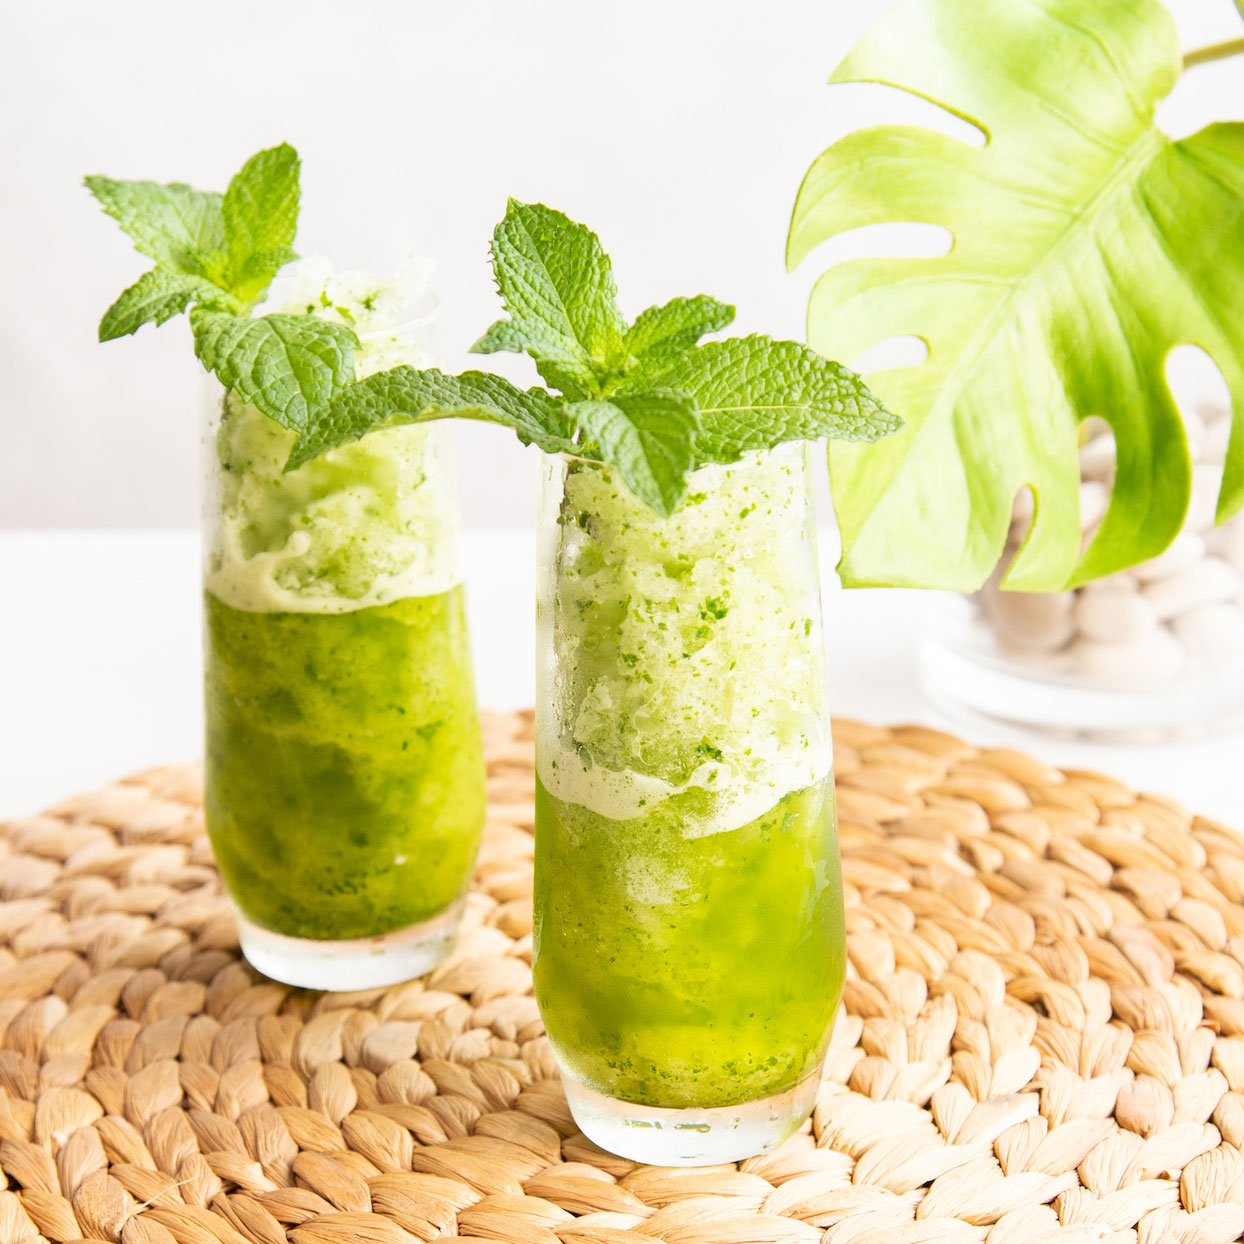 This frozen blender cocktail pays homage to the classic Cuban mojito cocktail, a refreshing blend of mint, limes, sugar and rum. This easy-breezy sipper is easy to make for 2 people in minutes.